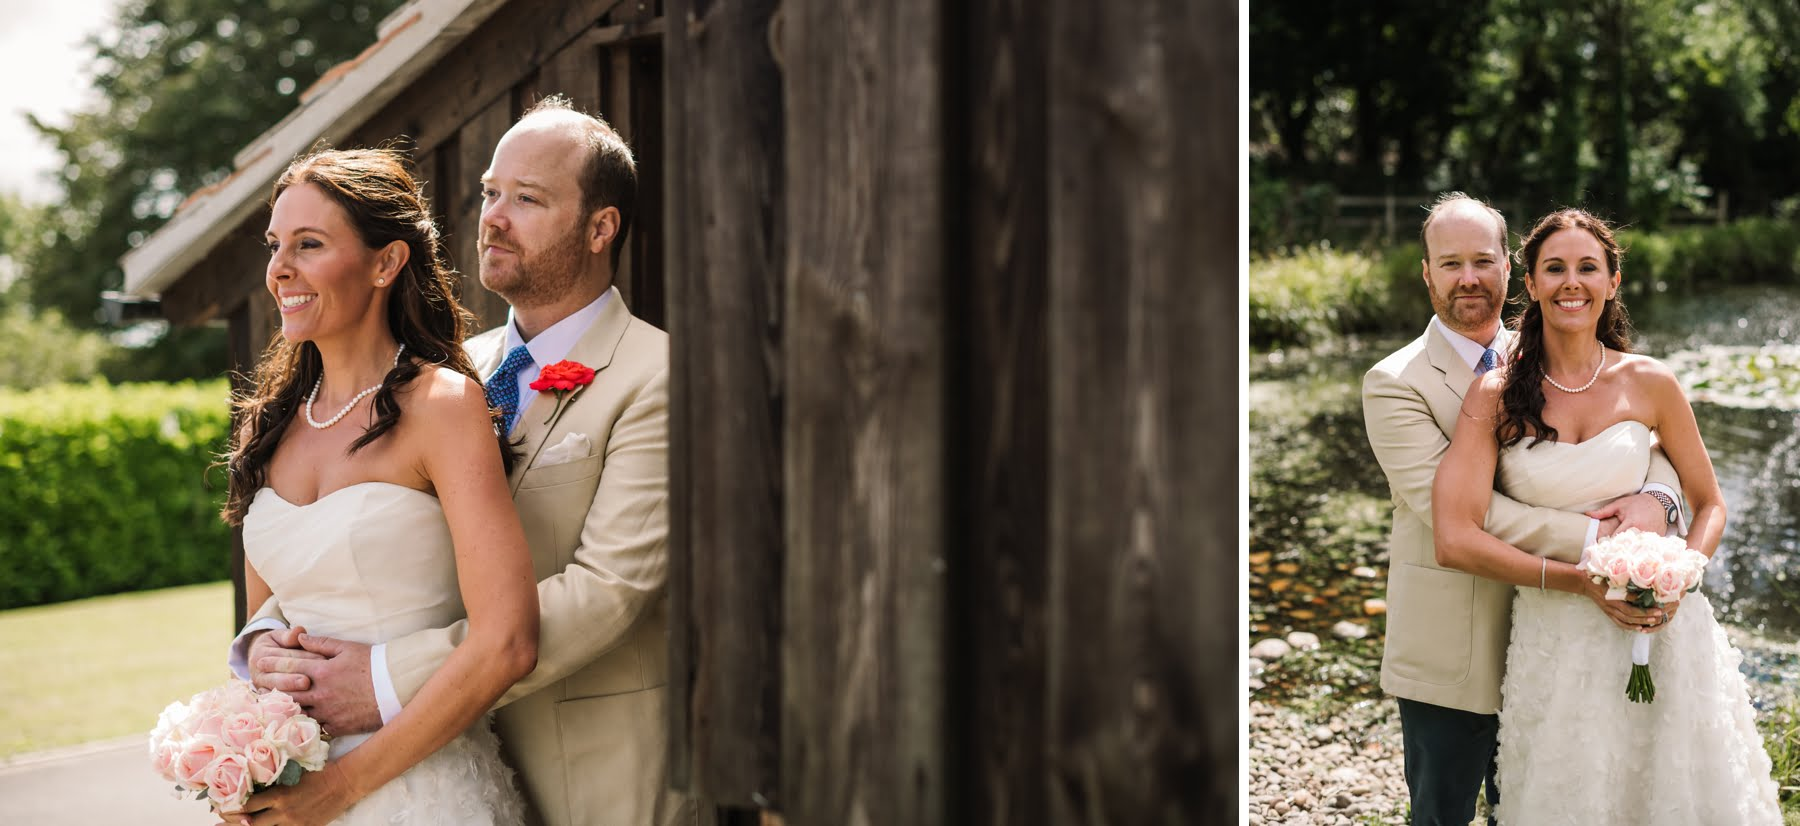 Luccombe Farm Wedding Photographs